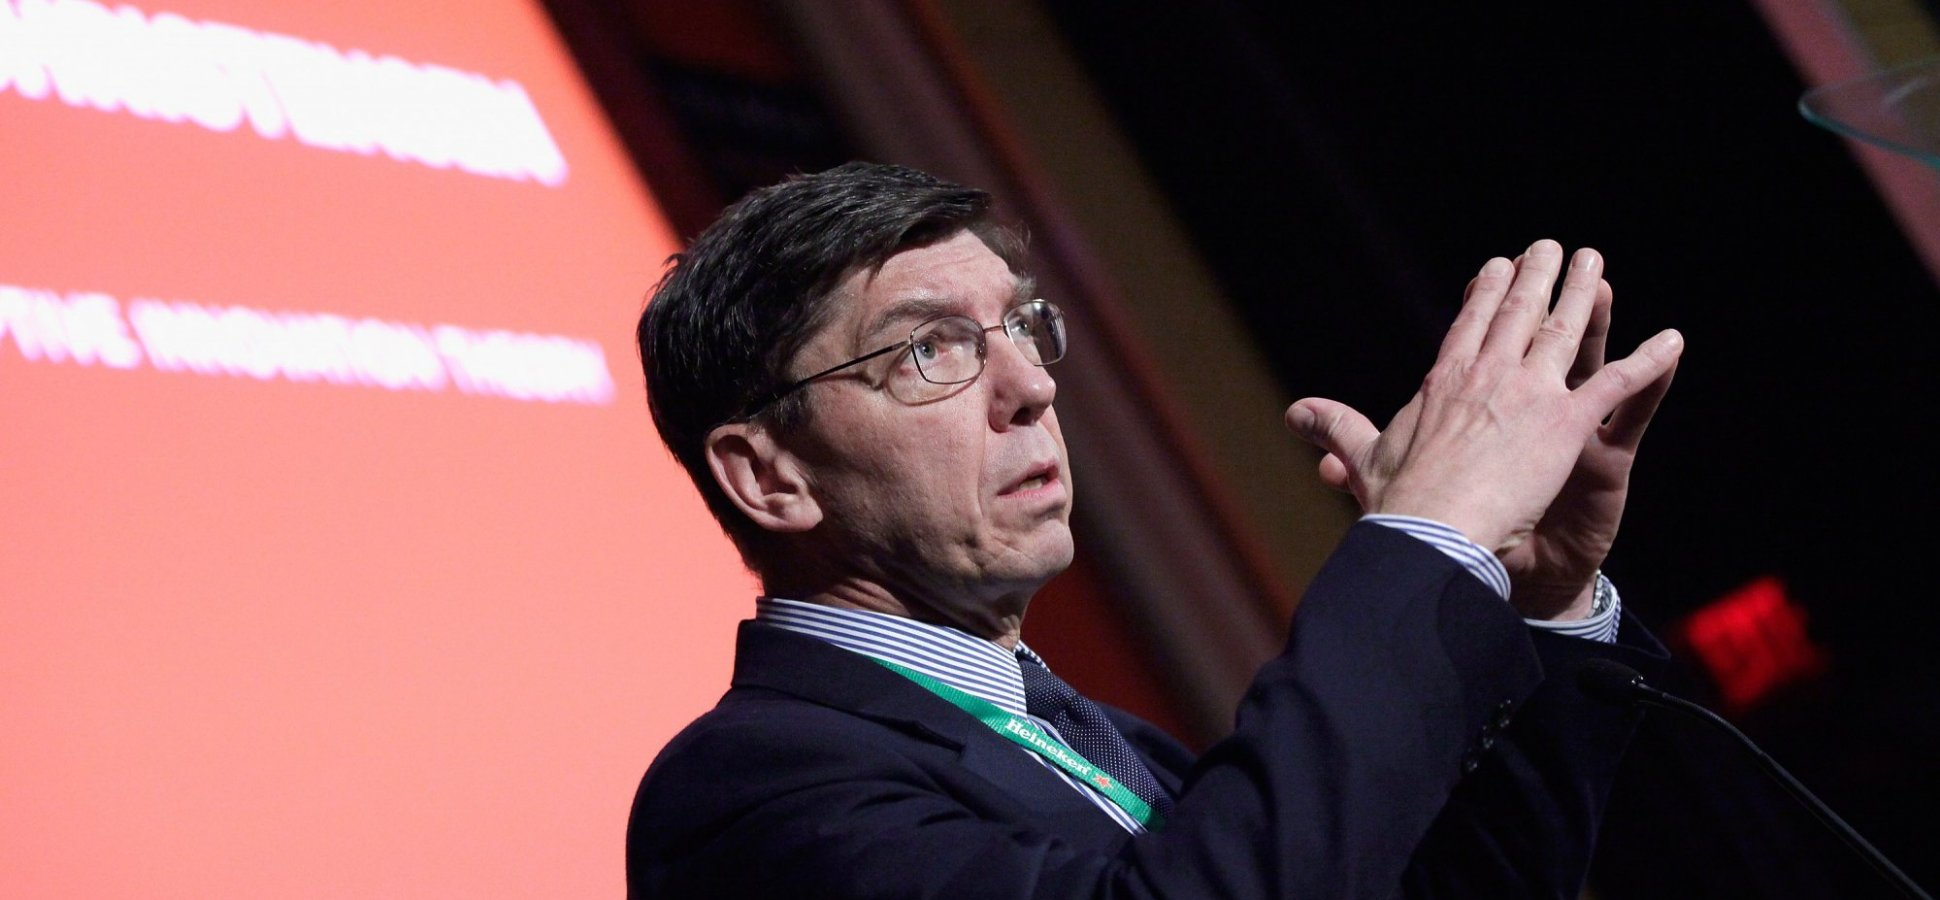 Harvard's Clayton Christensen, 'The Innovator's Dilemma' Author, Is Dead at 67